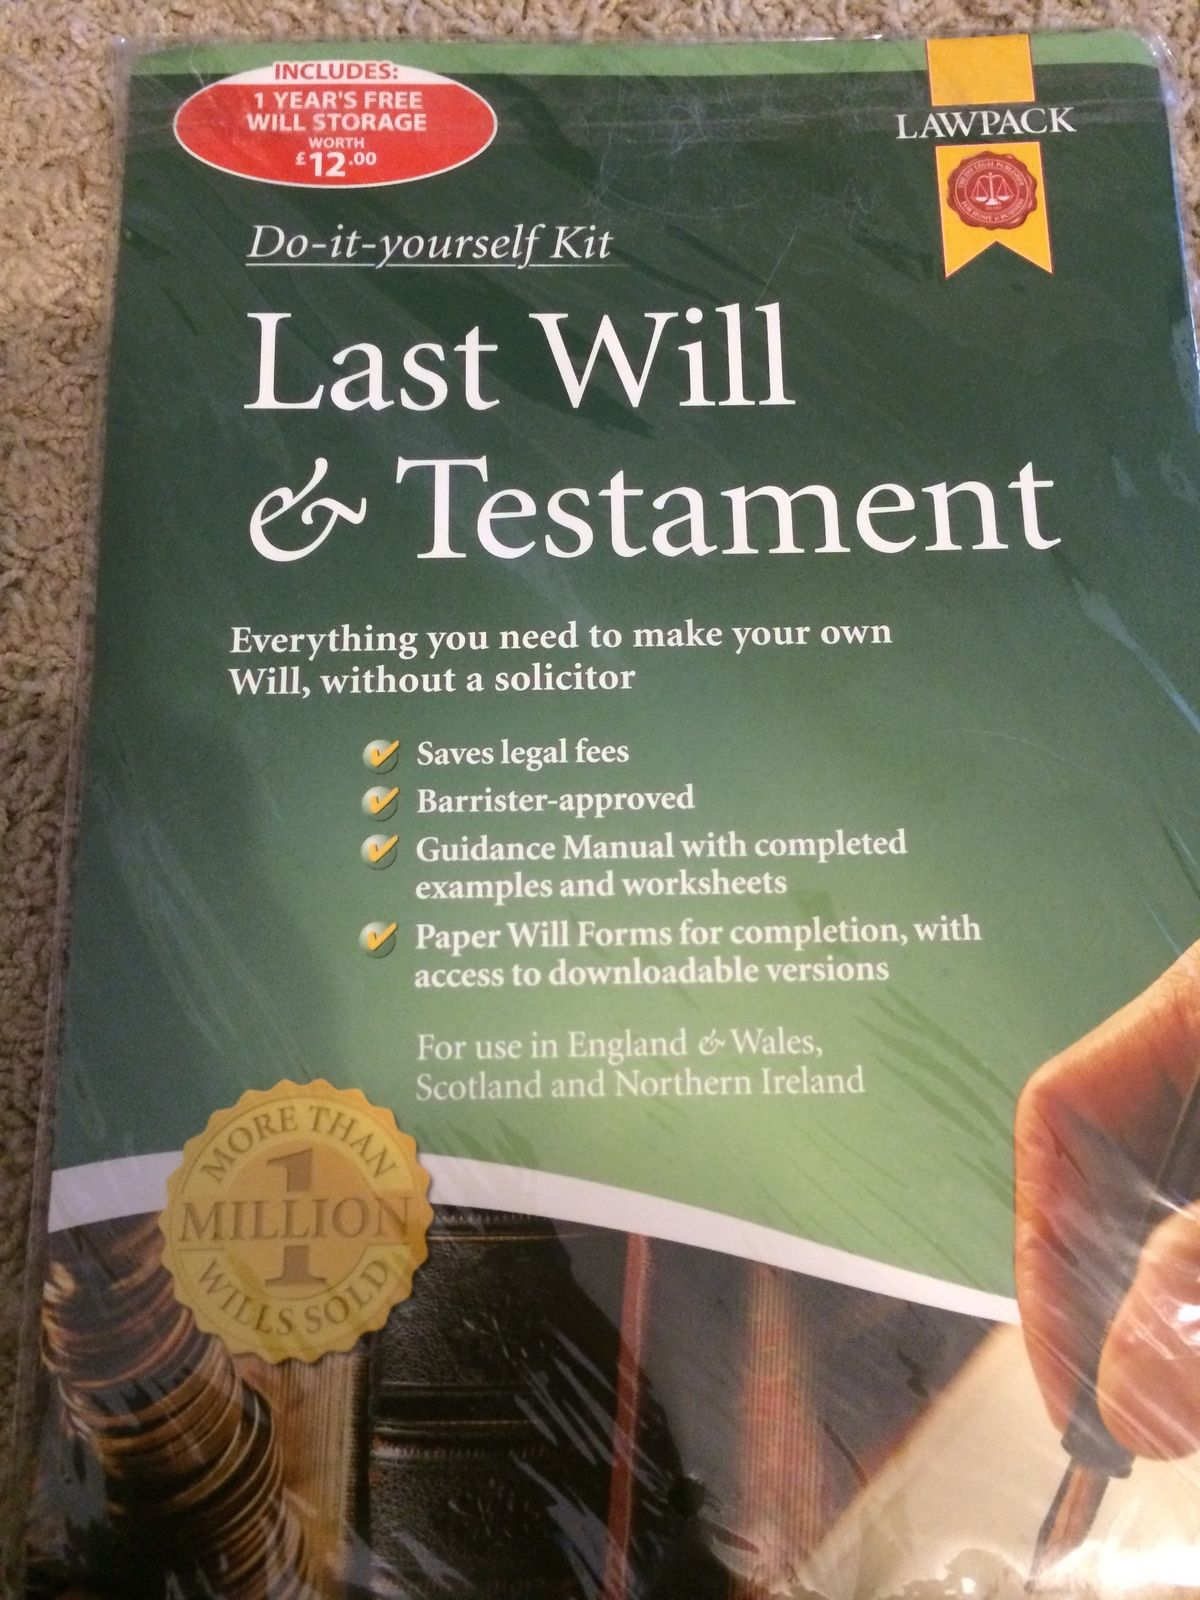 Last will and testament for england wales scotland and ireland last will and testament for england wales scotland and ireland evintage 15 solutioingenieria Images